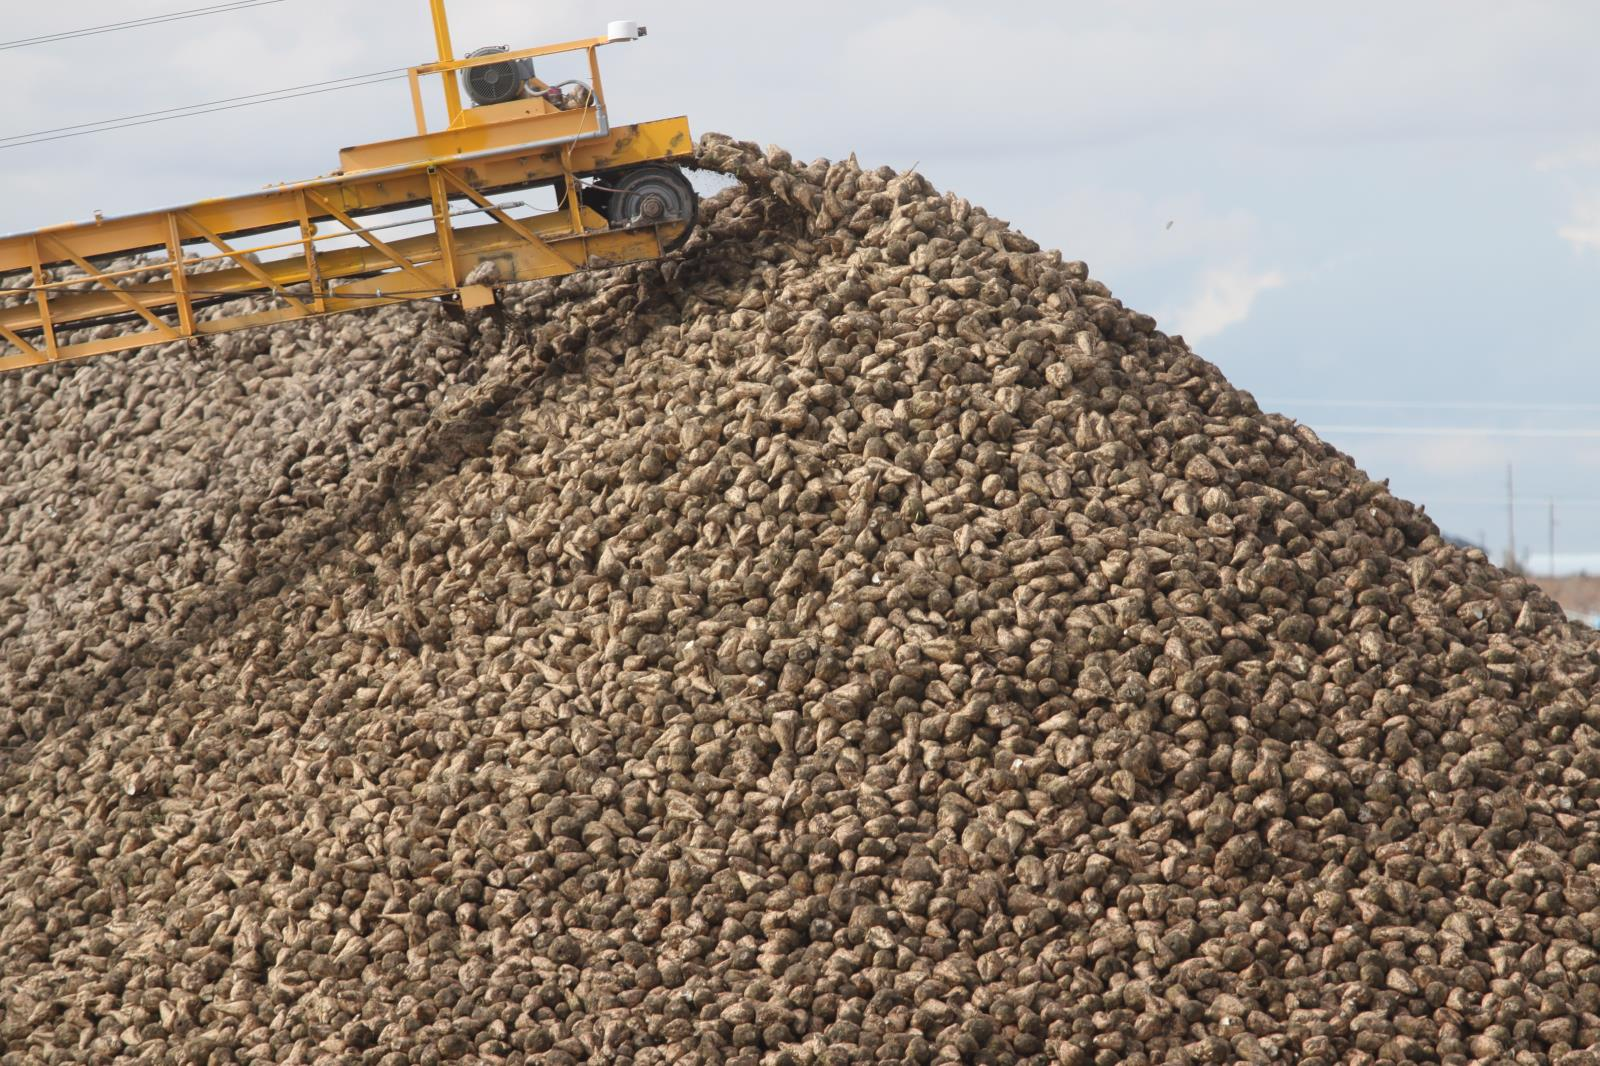 Idaho sugar beet growers are reporting good yields and sugar content so far during this year's harvest. Idaho farmers grow about 170,000 acres of sugar beets each year.